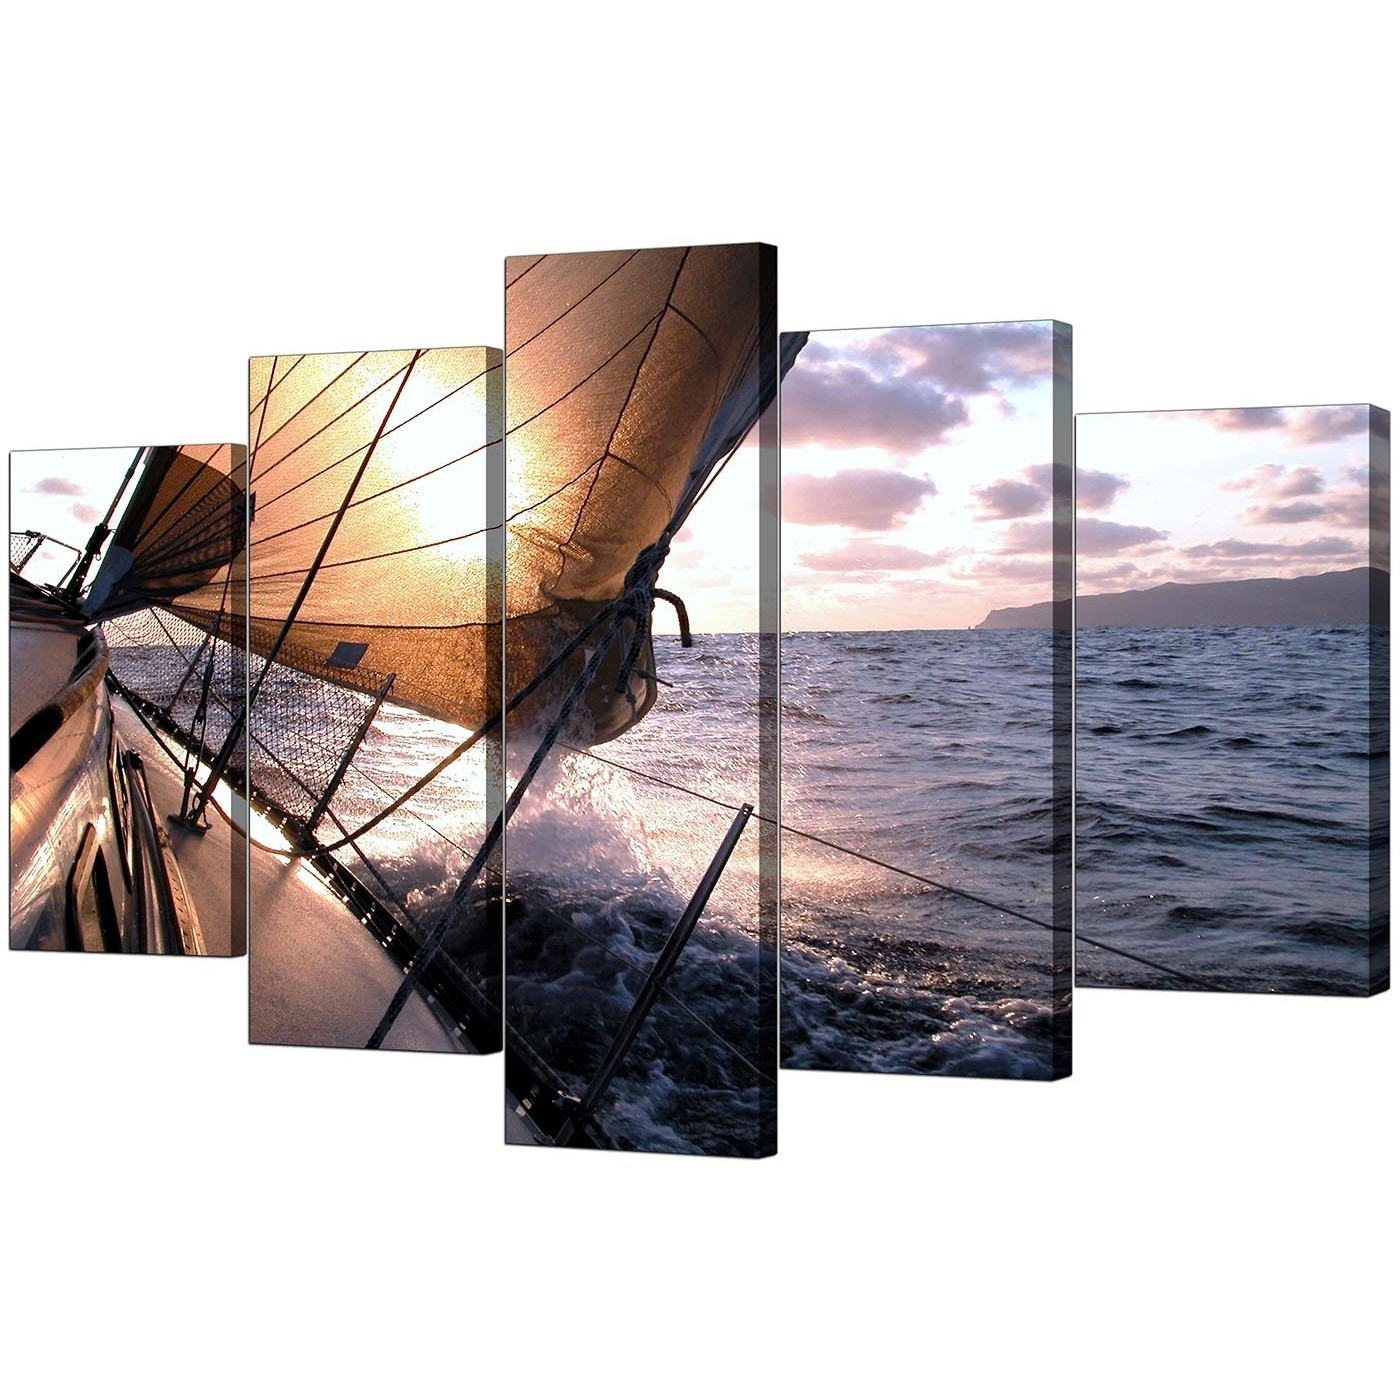 Fashionable Boat Canvas Prints Uk For Your Living Room – 5 Piece With 5 Piece Wall Art Canvas (View 7 of 15)